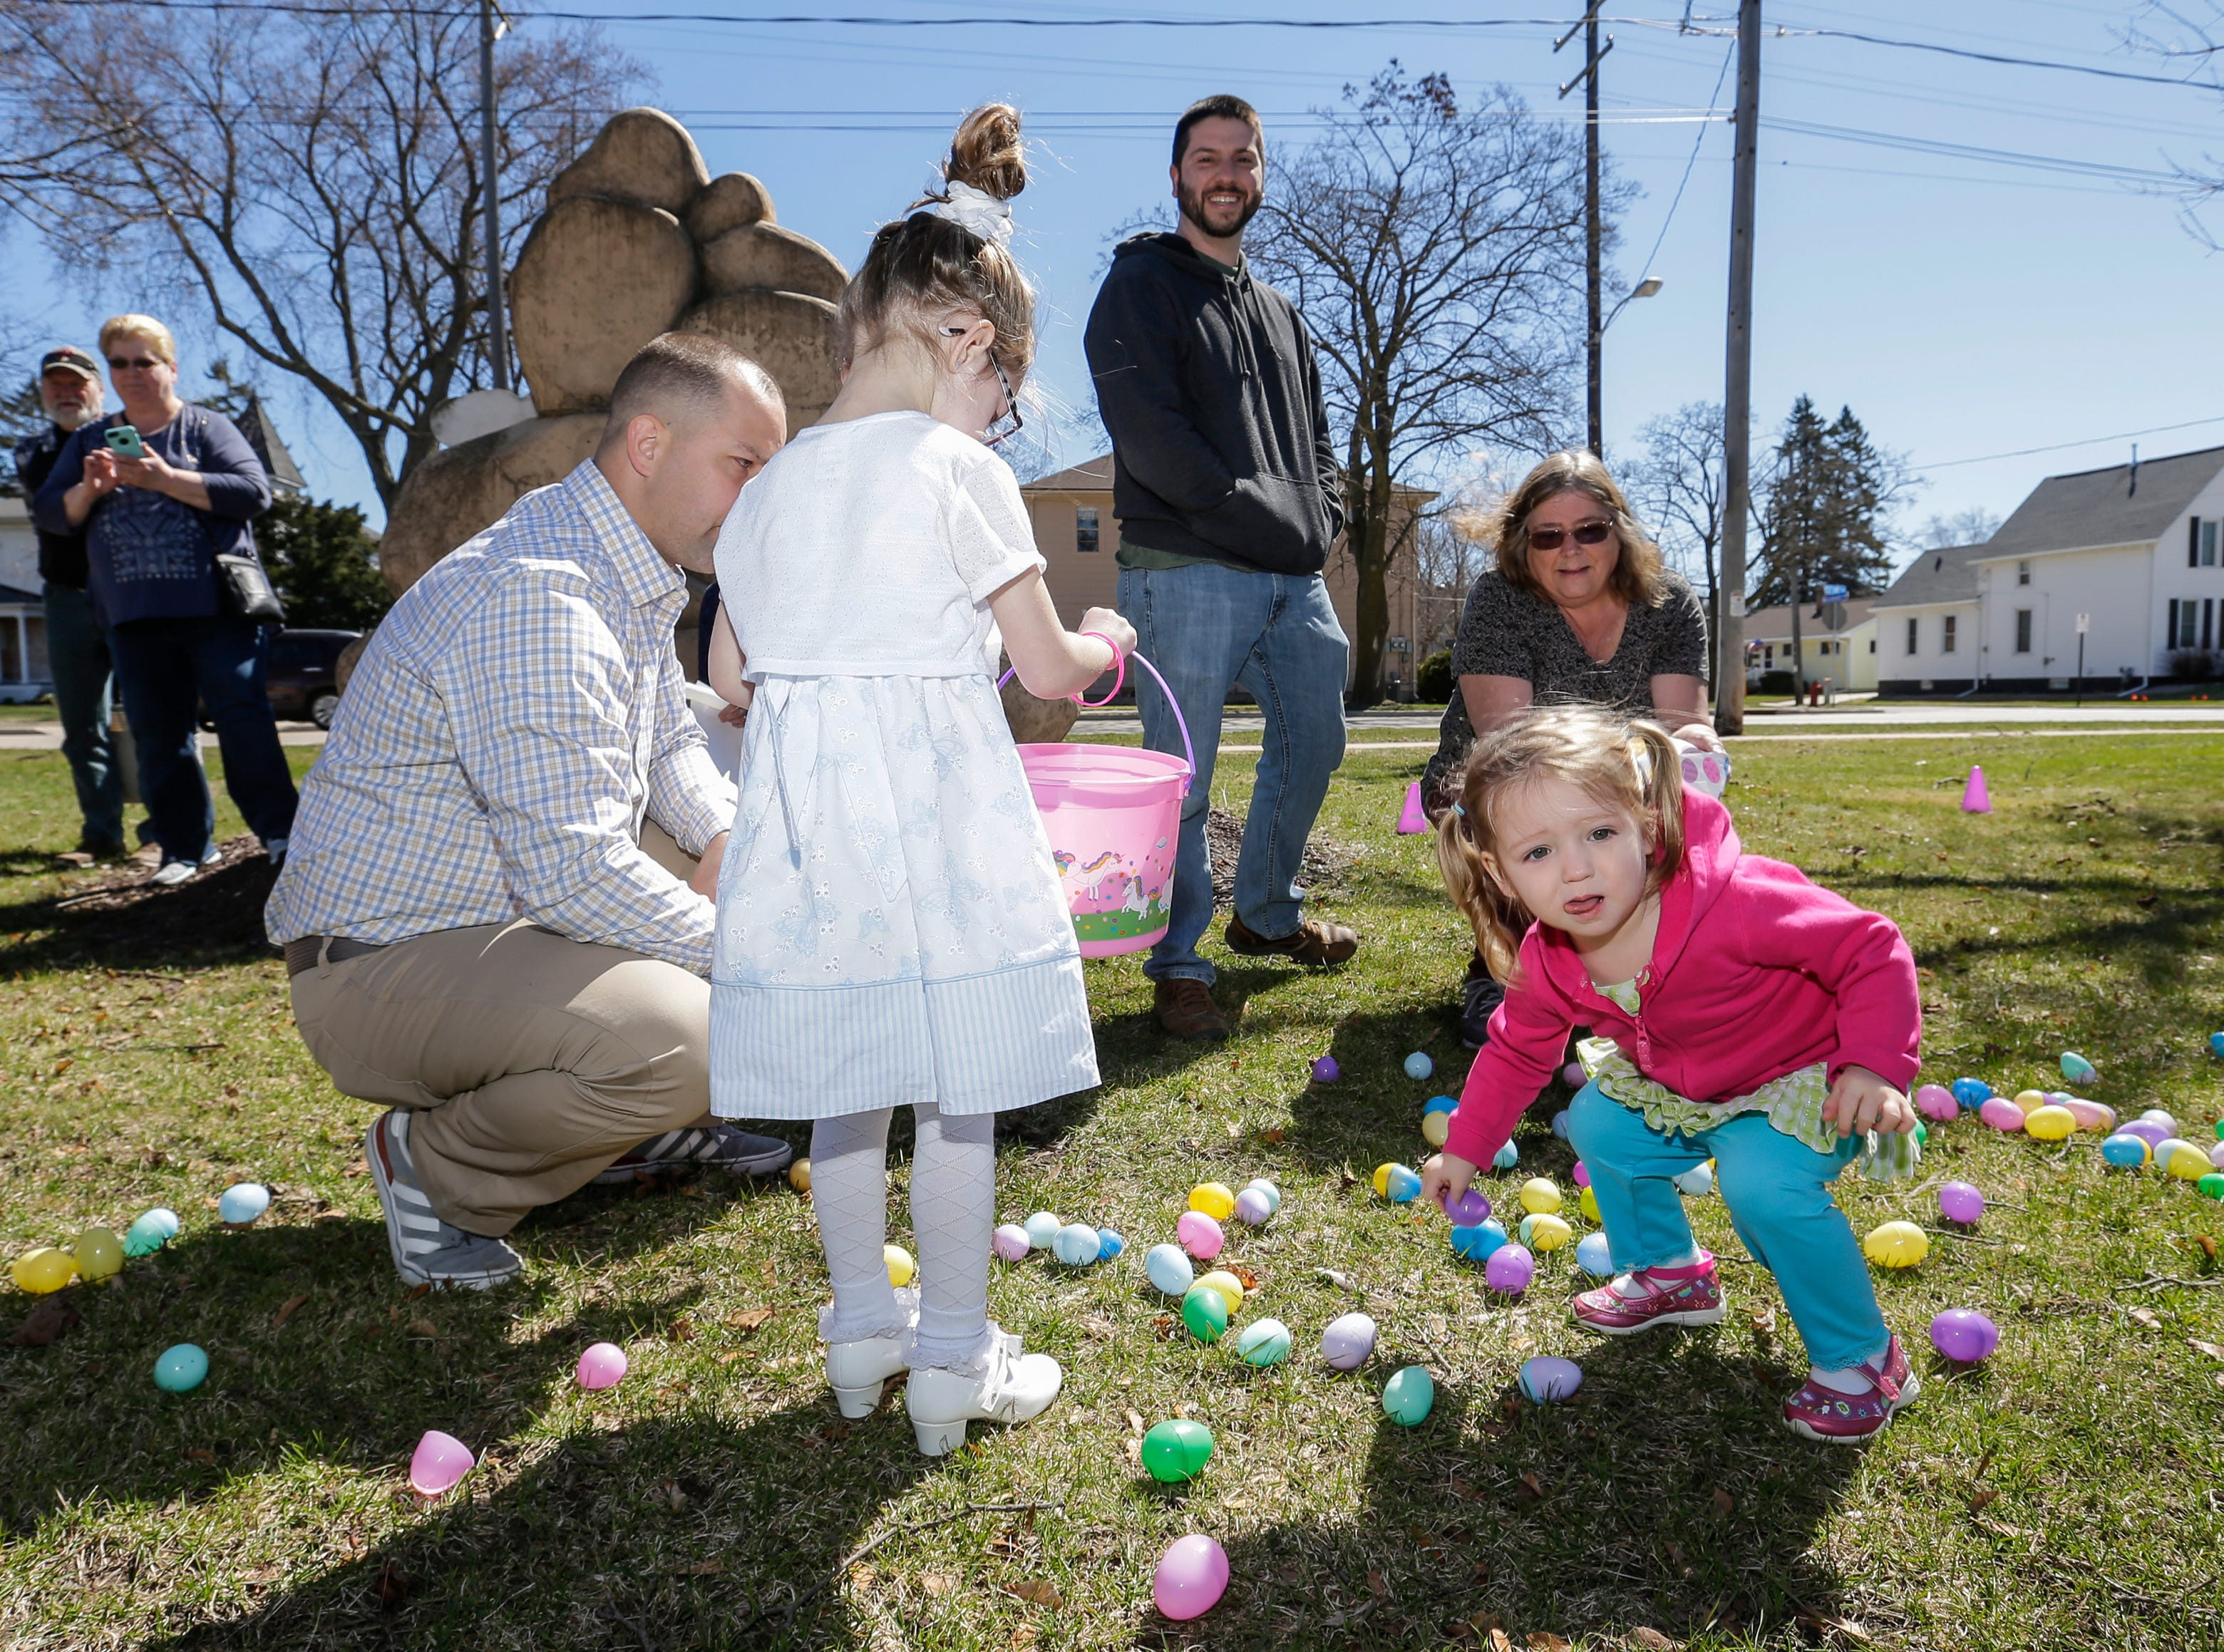 Children gather plastic Easter eggs during the Easter Eggstravaganza at Citizen Park Saturday, April 20, 2019, in Manitowoc, Wis. Joshua Clark/USA TODAY NETWORK-Wisconsin